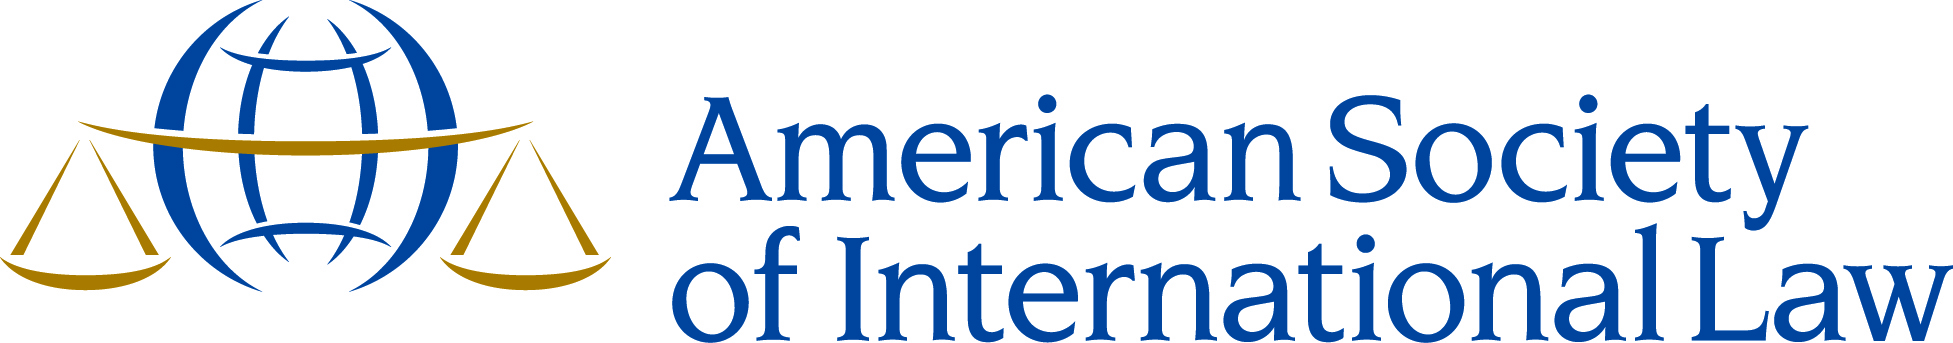 logo for American Society of International Law